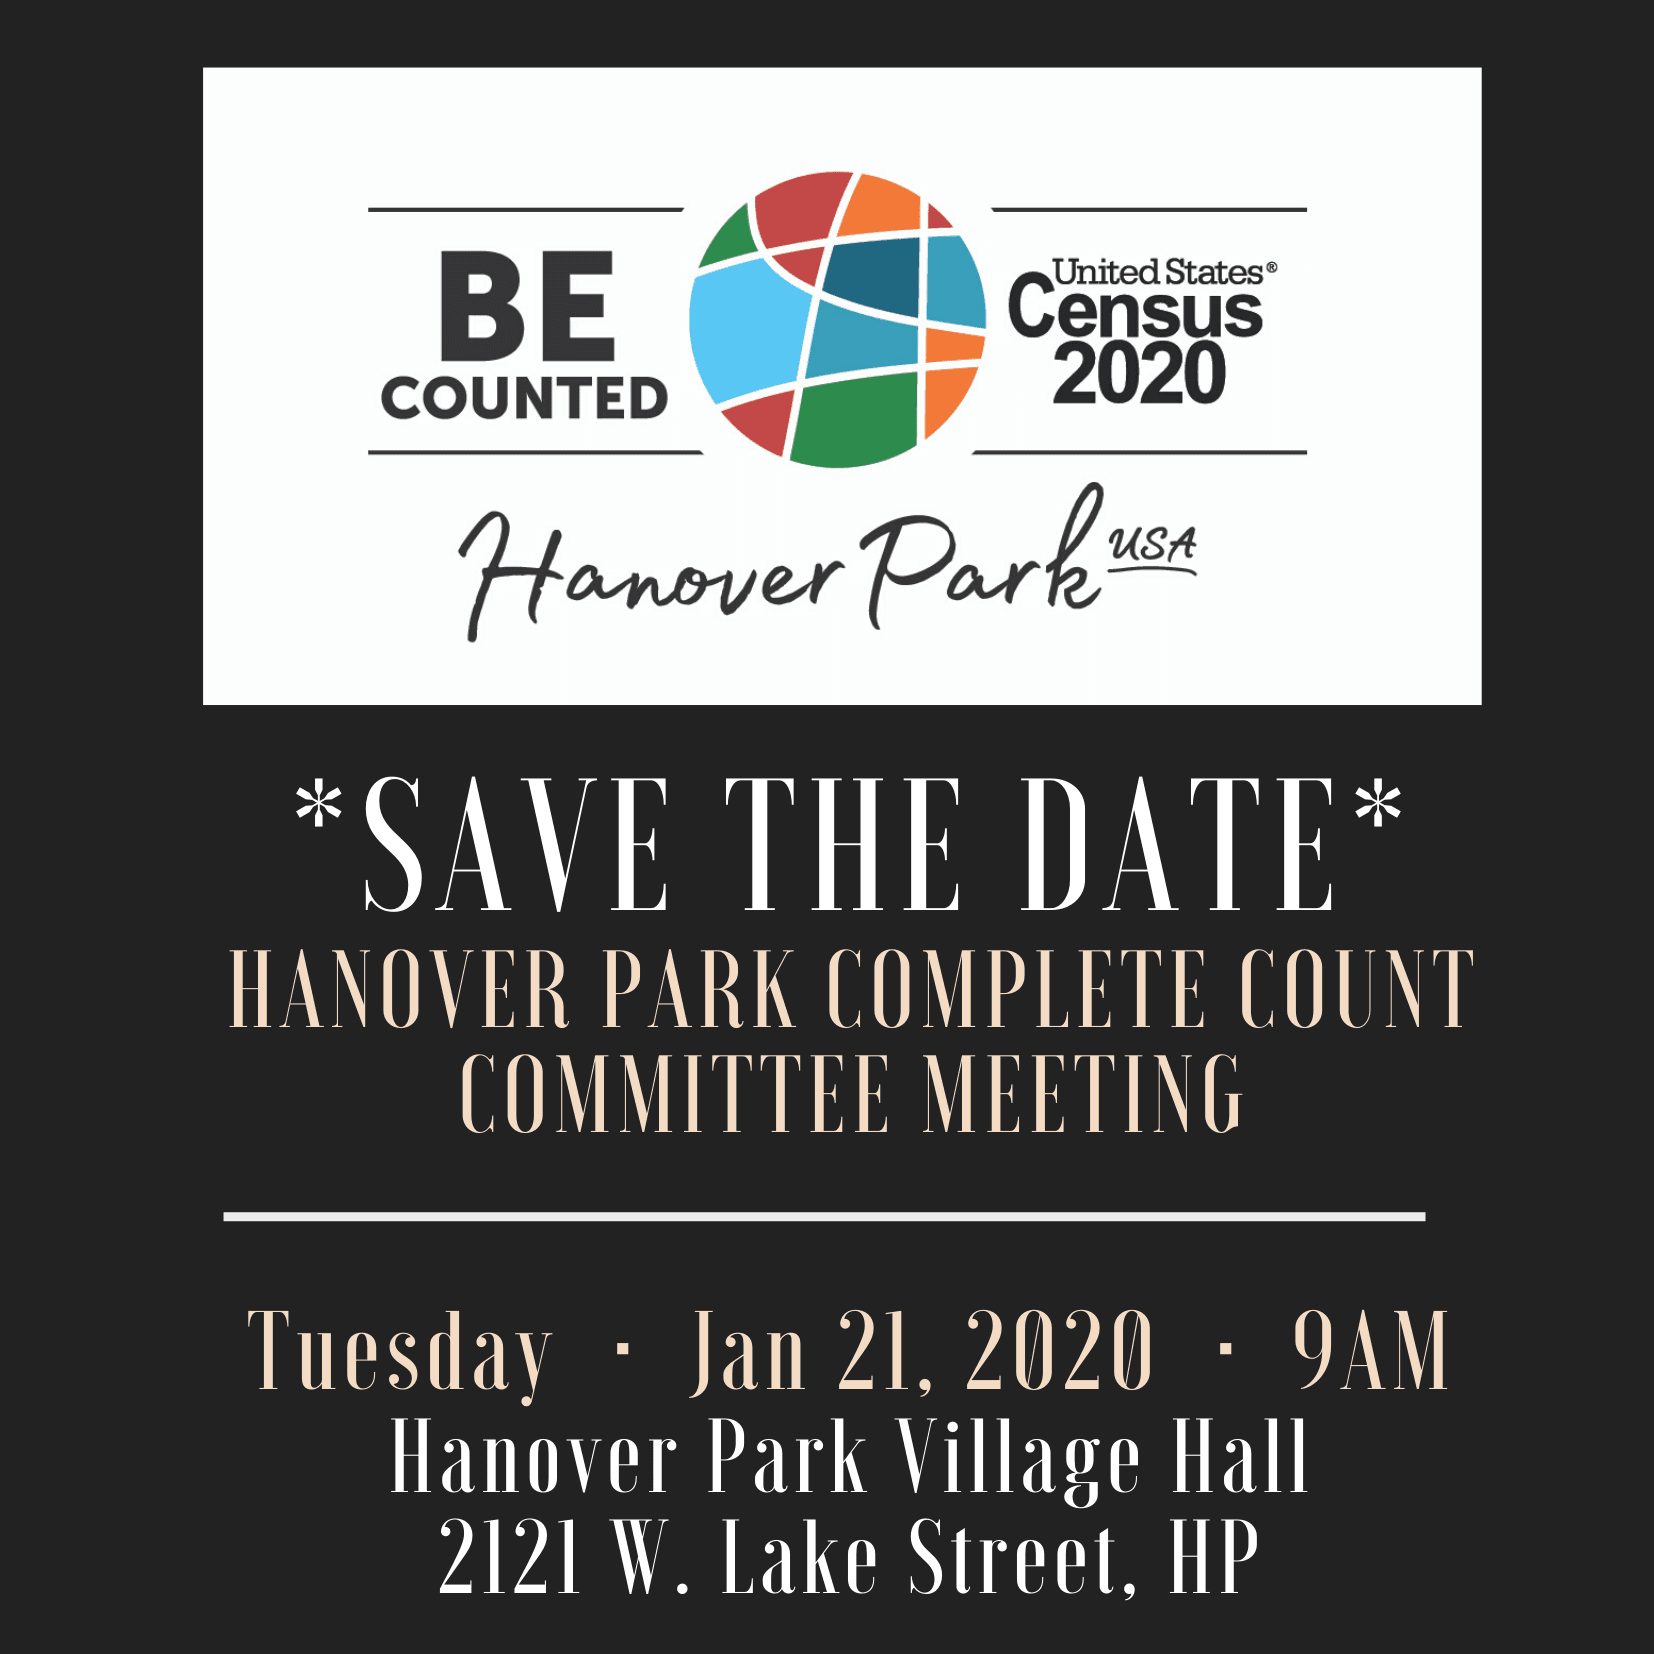 SAVE THE DATE Hanover Park Complete count committee meeting flyer